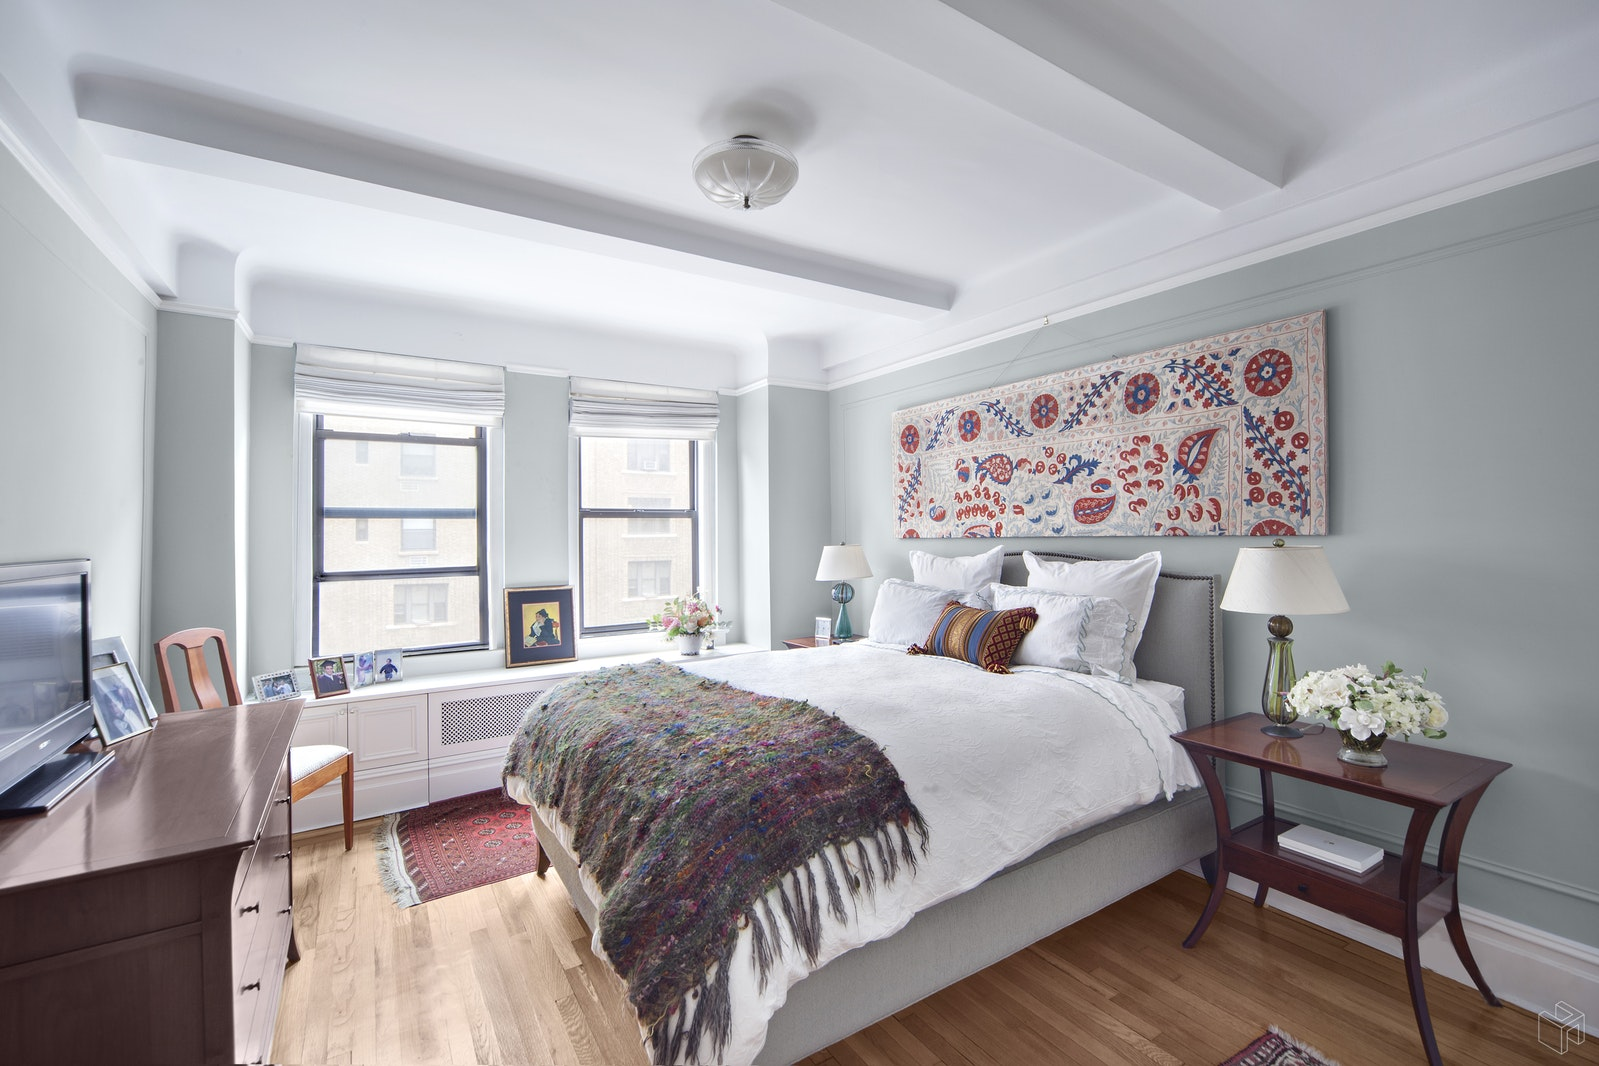 305 WEST 86TH STREET 9A, Upper West Side, $725,000, Web #: 18308954